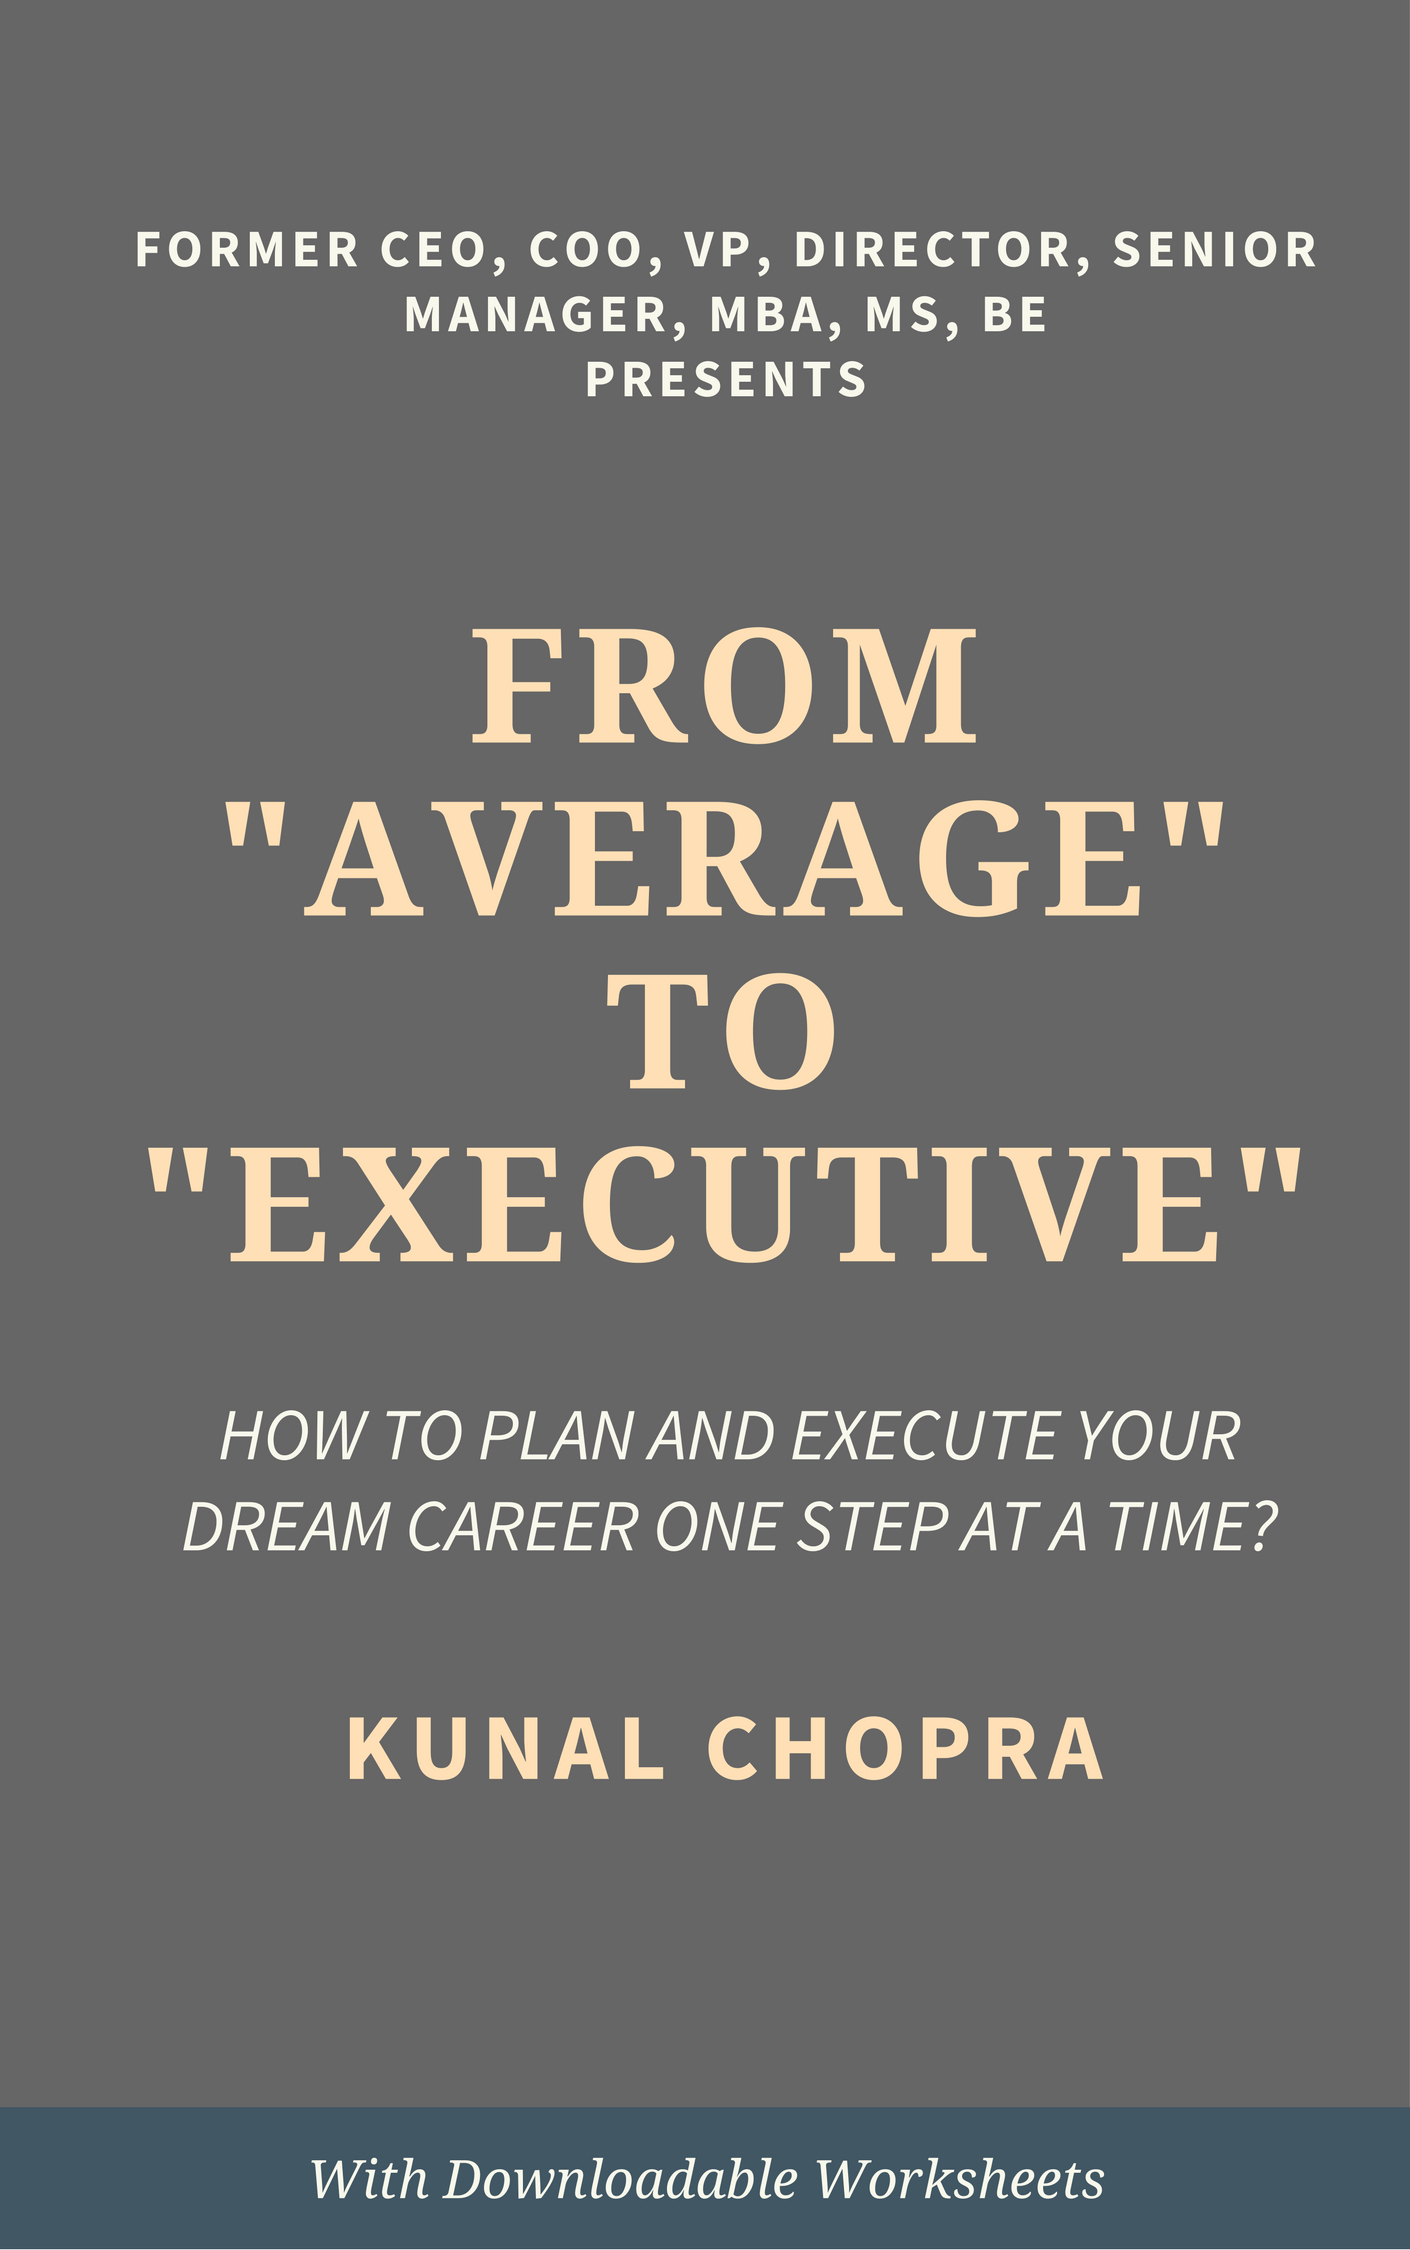 From Average to Executive - KINDLE COVER.jpg